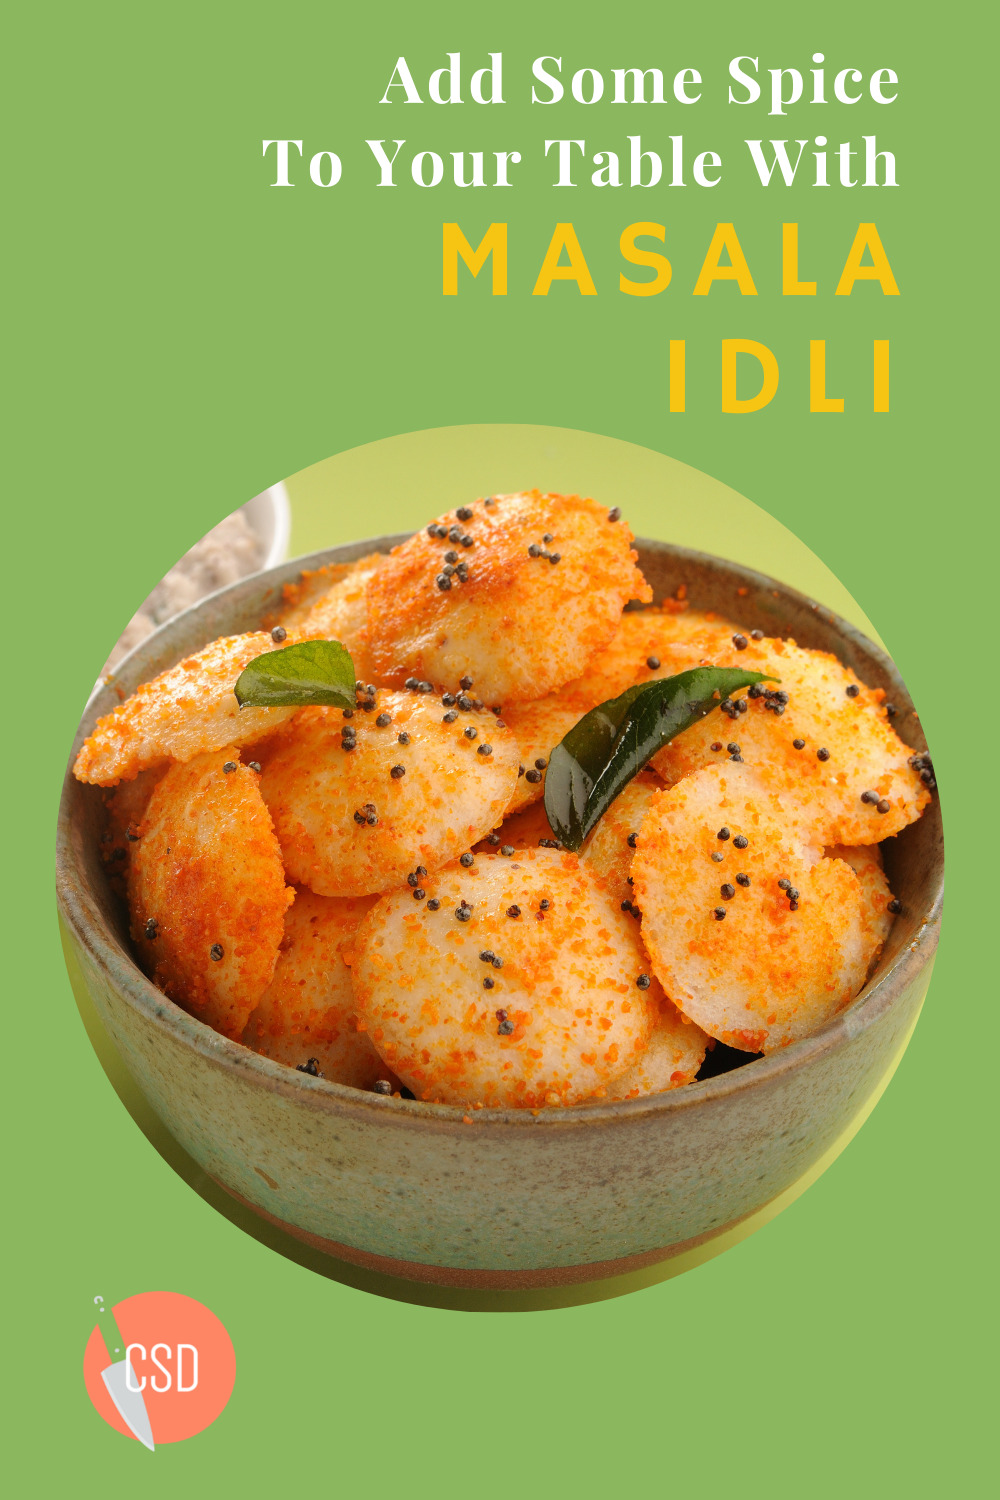 Cutsidedown.com will help you wow your dinner guests with amazing and easy recipes. Find whatever your palette desires with tons of ideas to choose from. Branch out of your comfort zone with this simple and delicious masala idli!